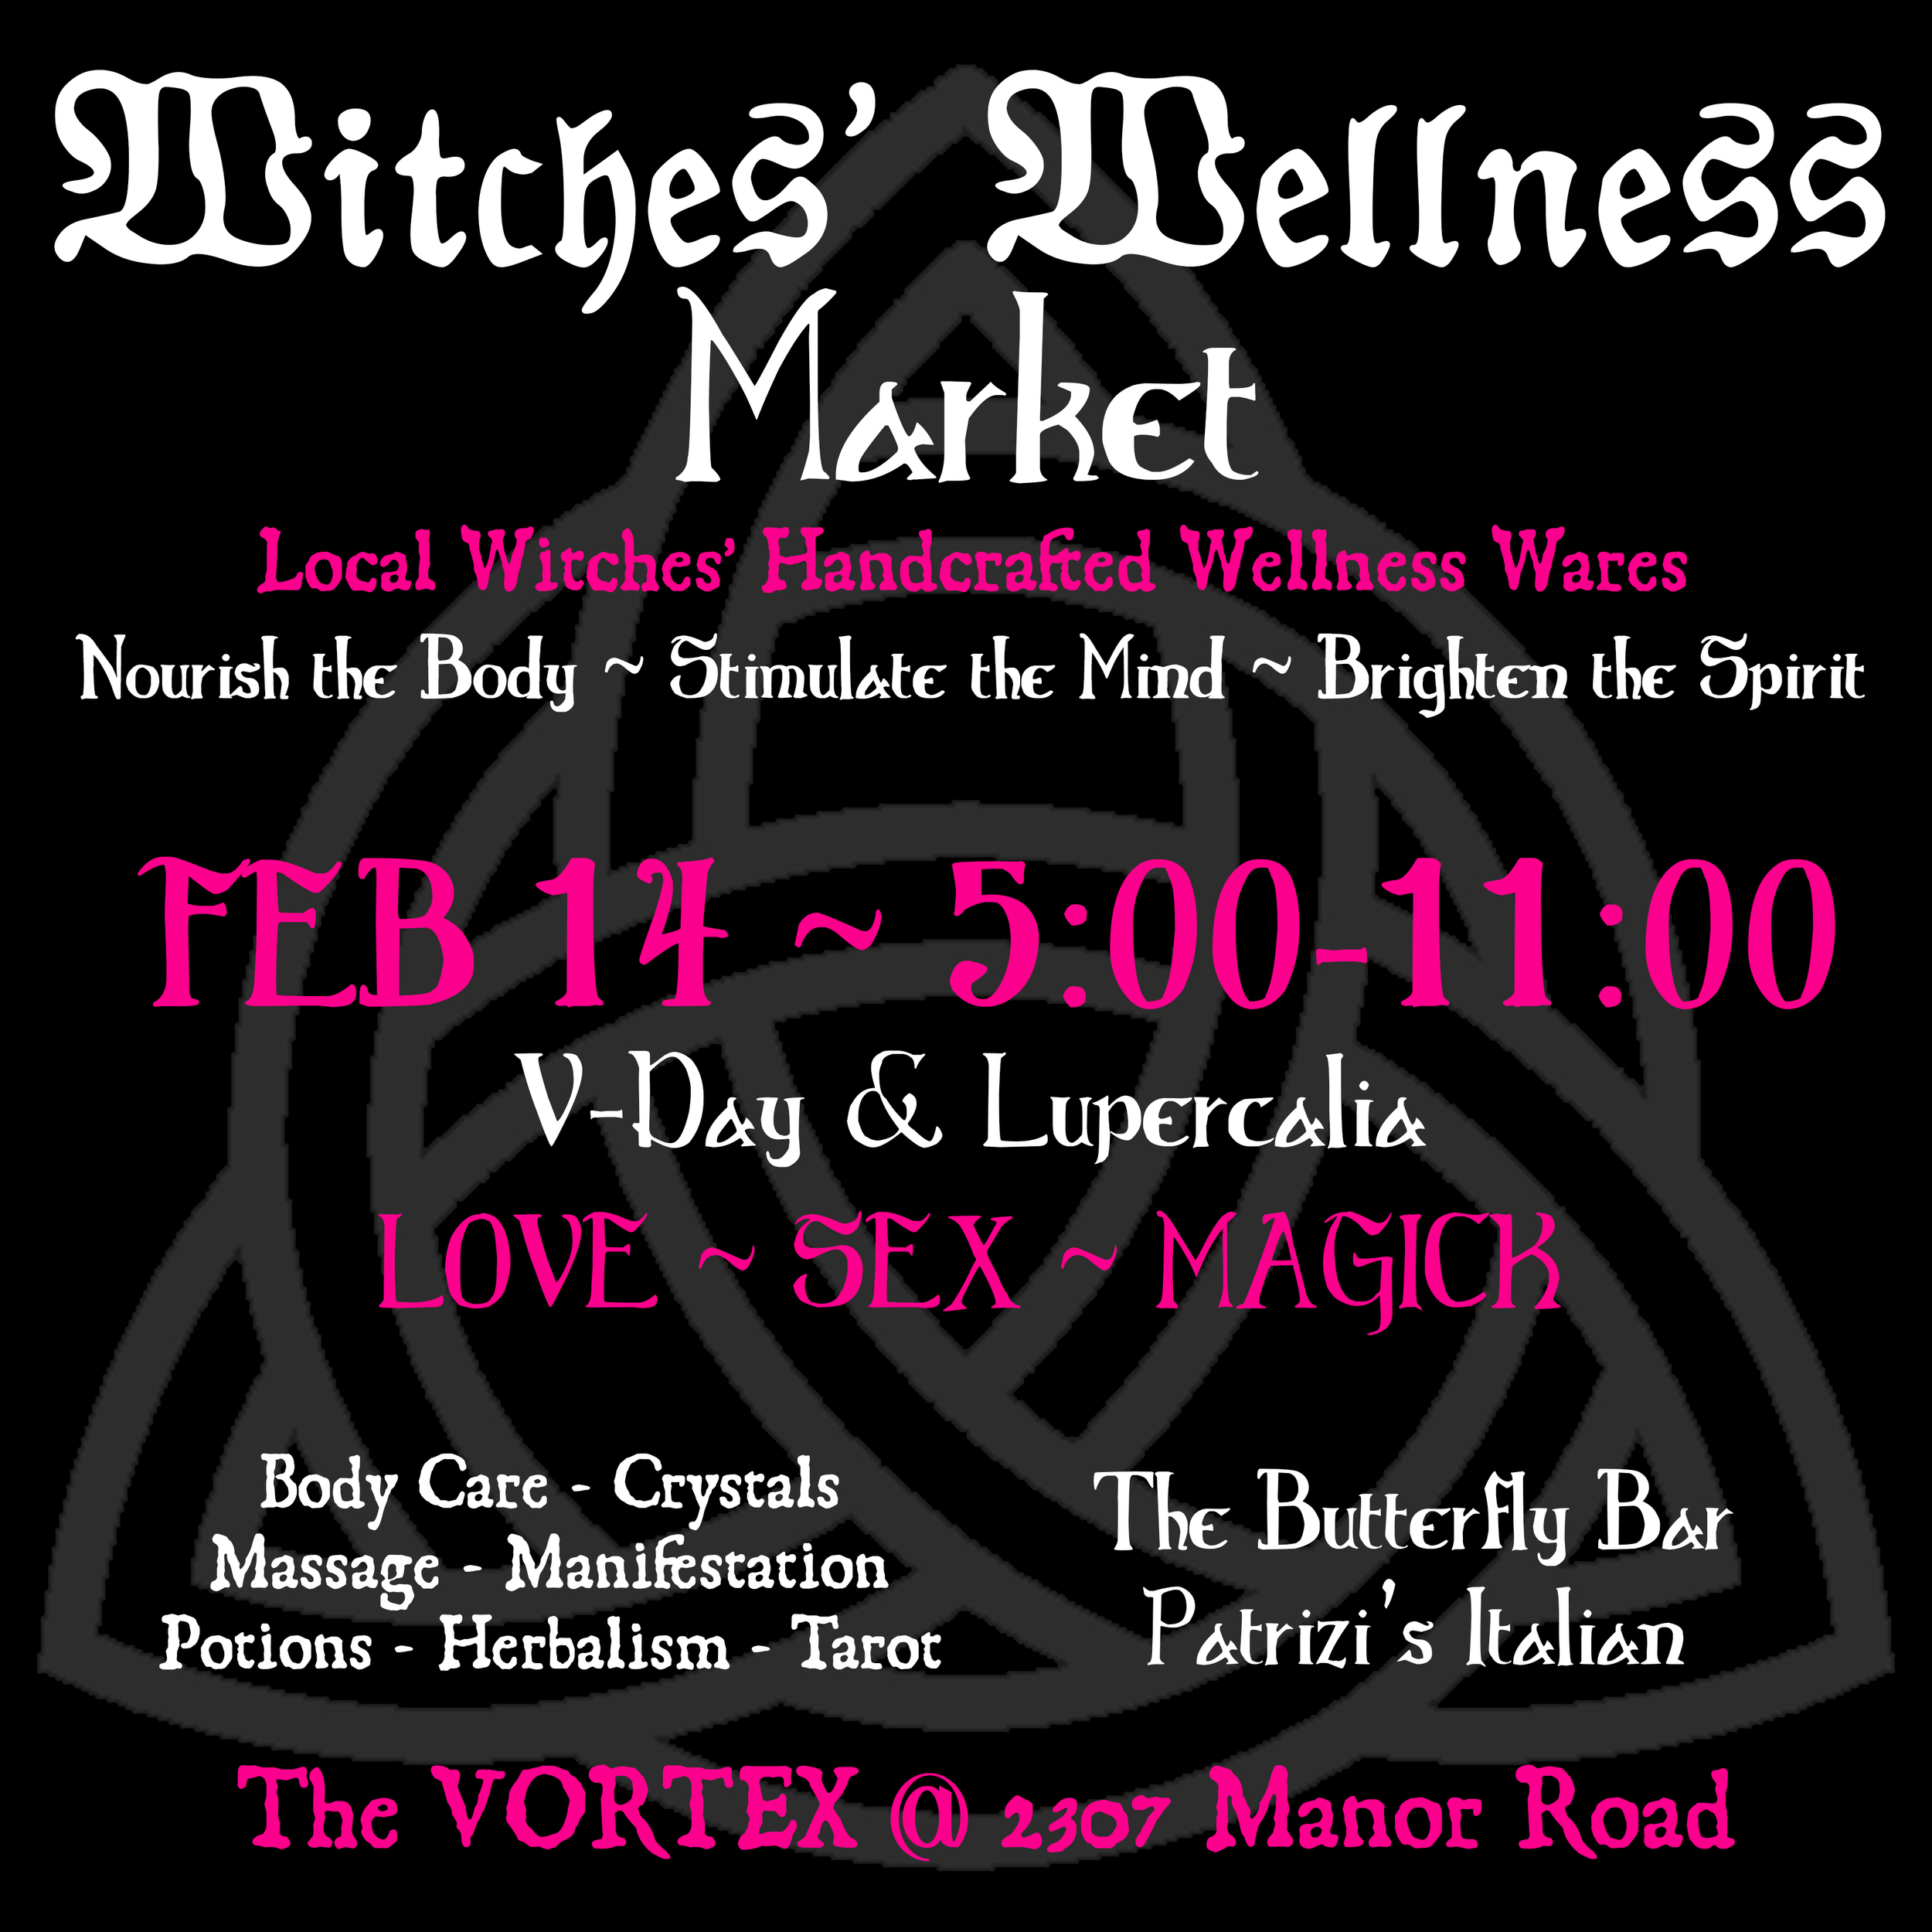 feb 14 witches wellness insta flyer